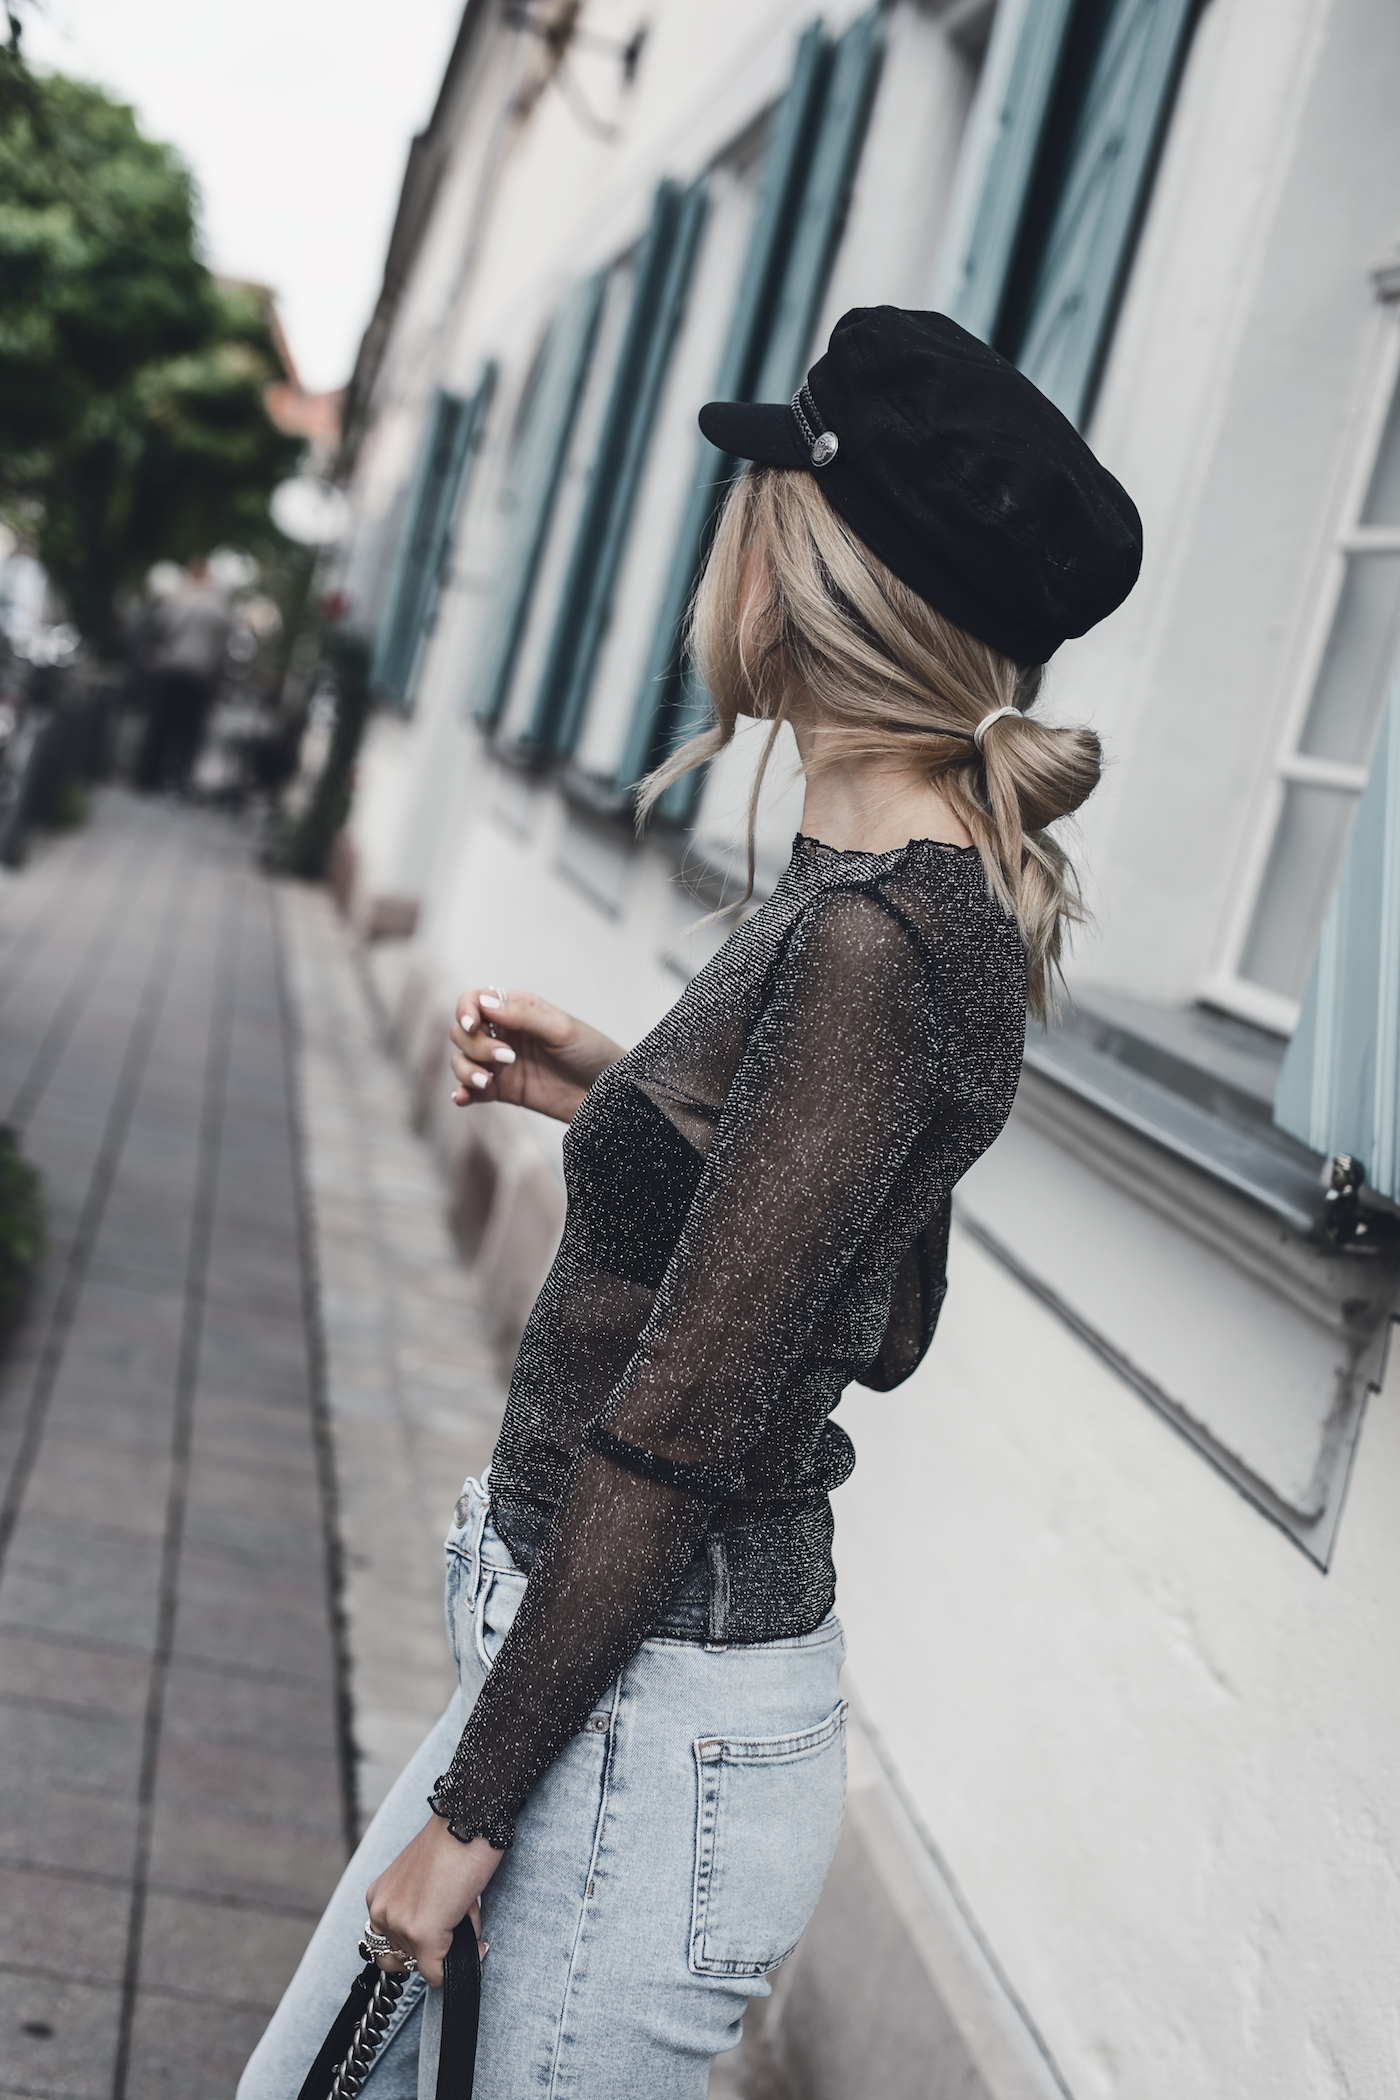 Baker Boy Hat Trend 2017 Fall Autumn Outfit Ideas | Want Get Repeat Fashion Blog Mode Blog Erlangen Nürnberg Bayern